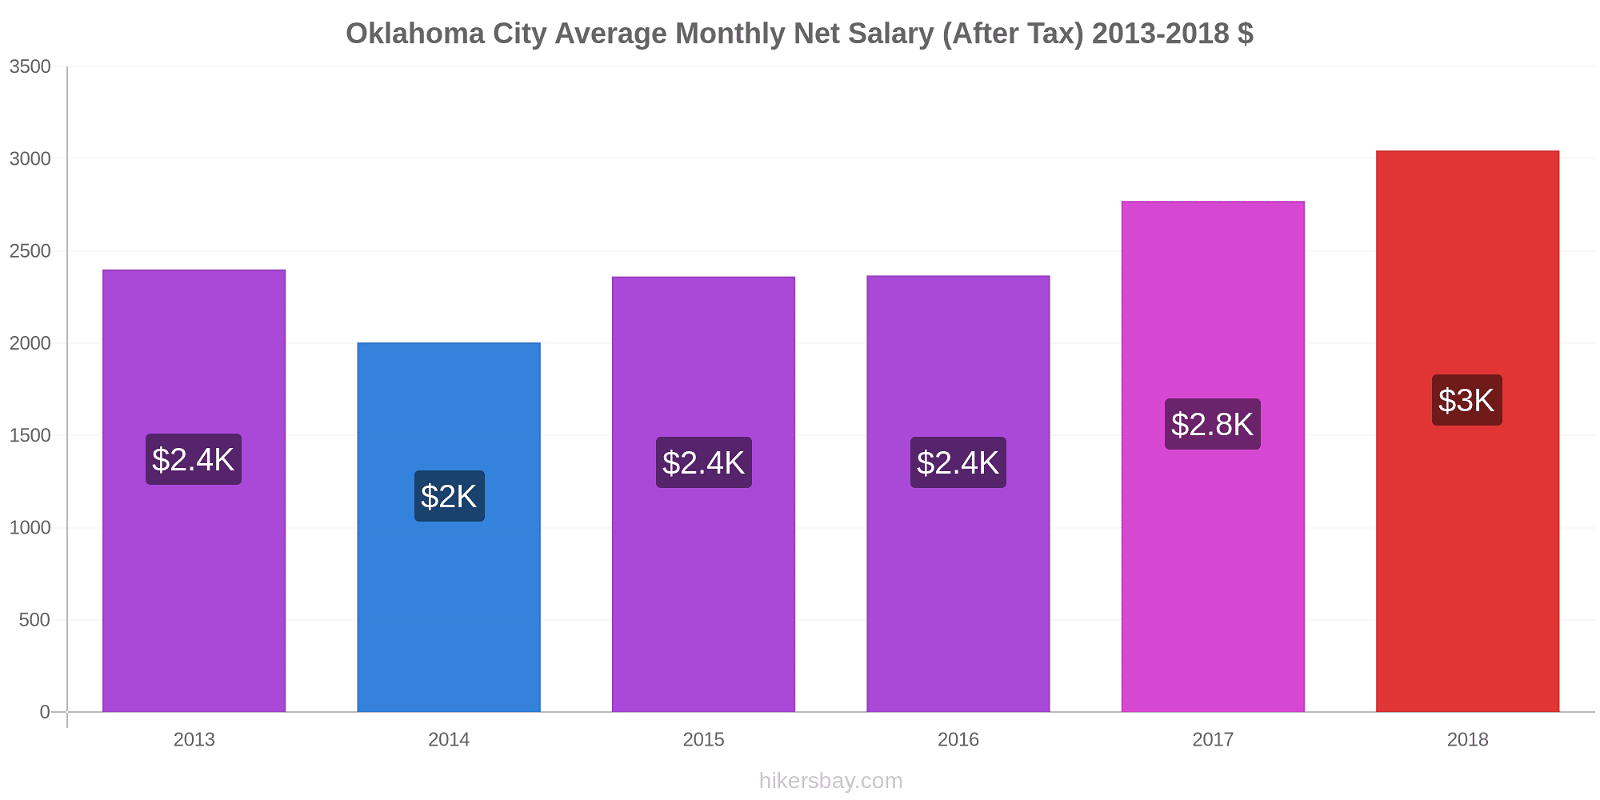 Oklahoma City price changes Average Monthly Net Salary (After Tax) hikersbay.com